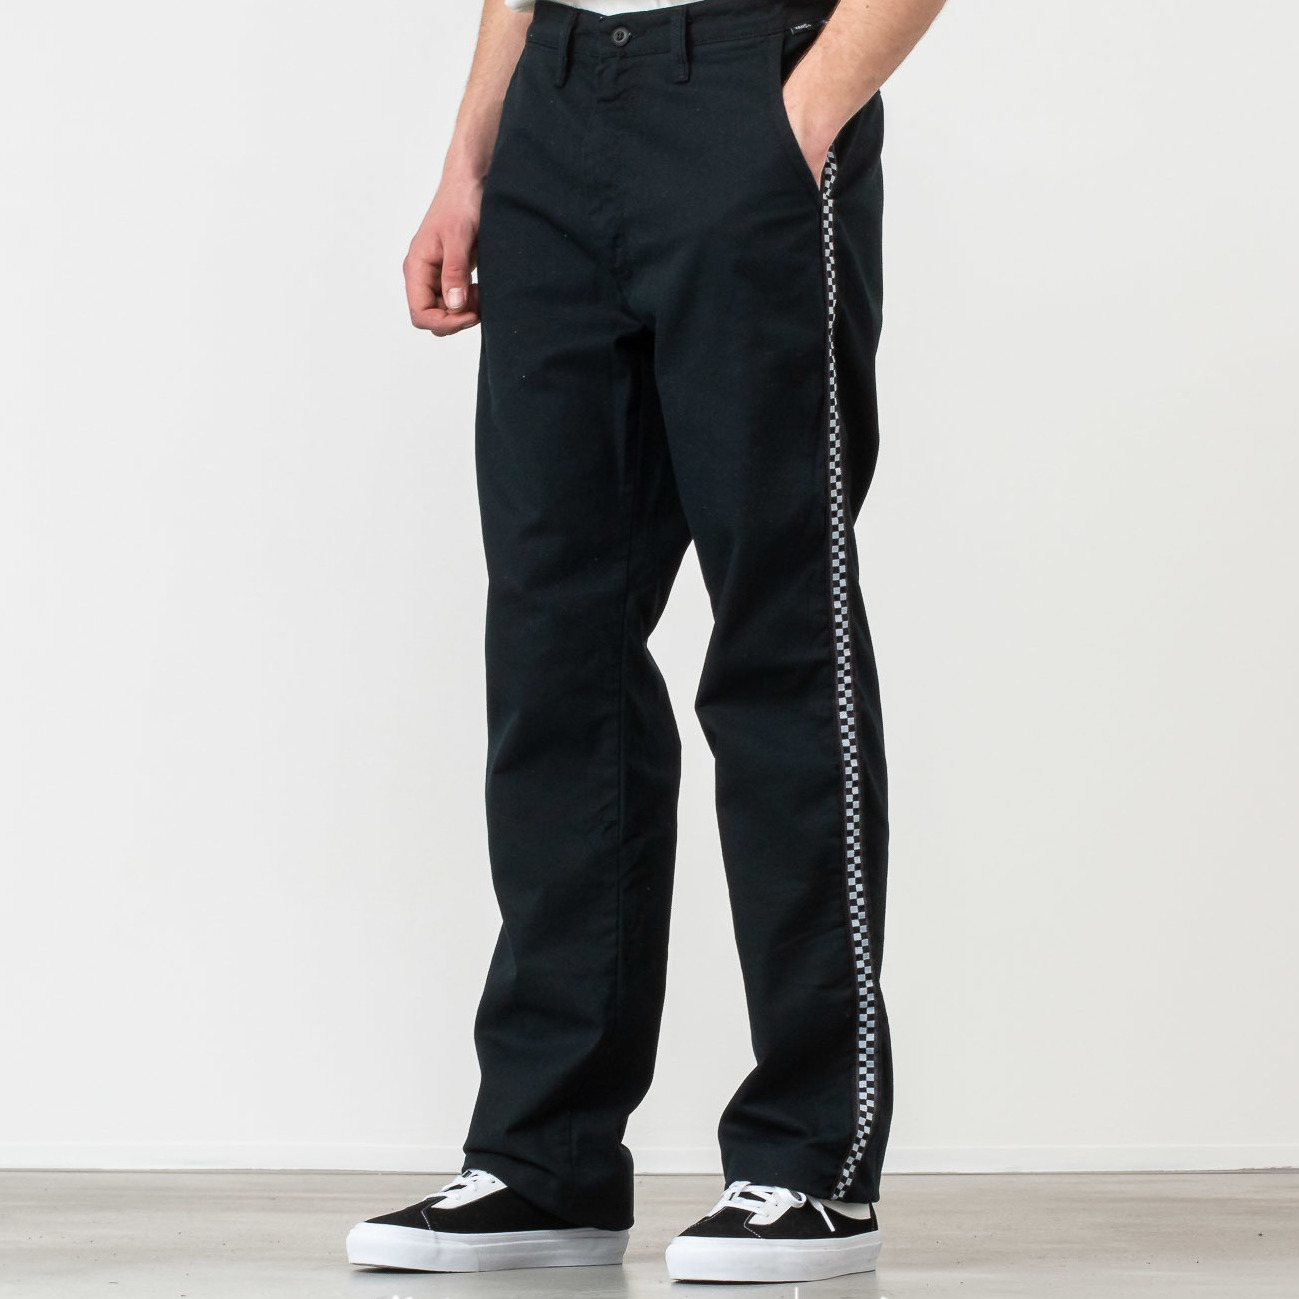 Vans Authentic Chino Pro Taped Pant Black/ Checkerboard 31